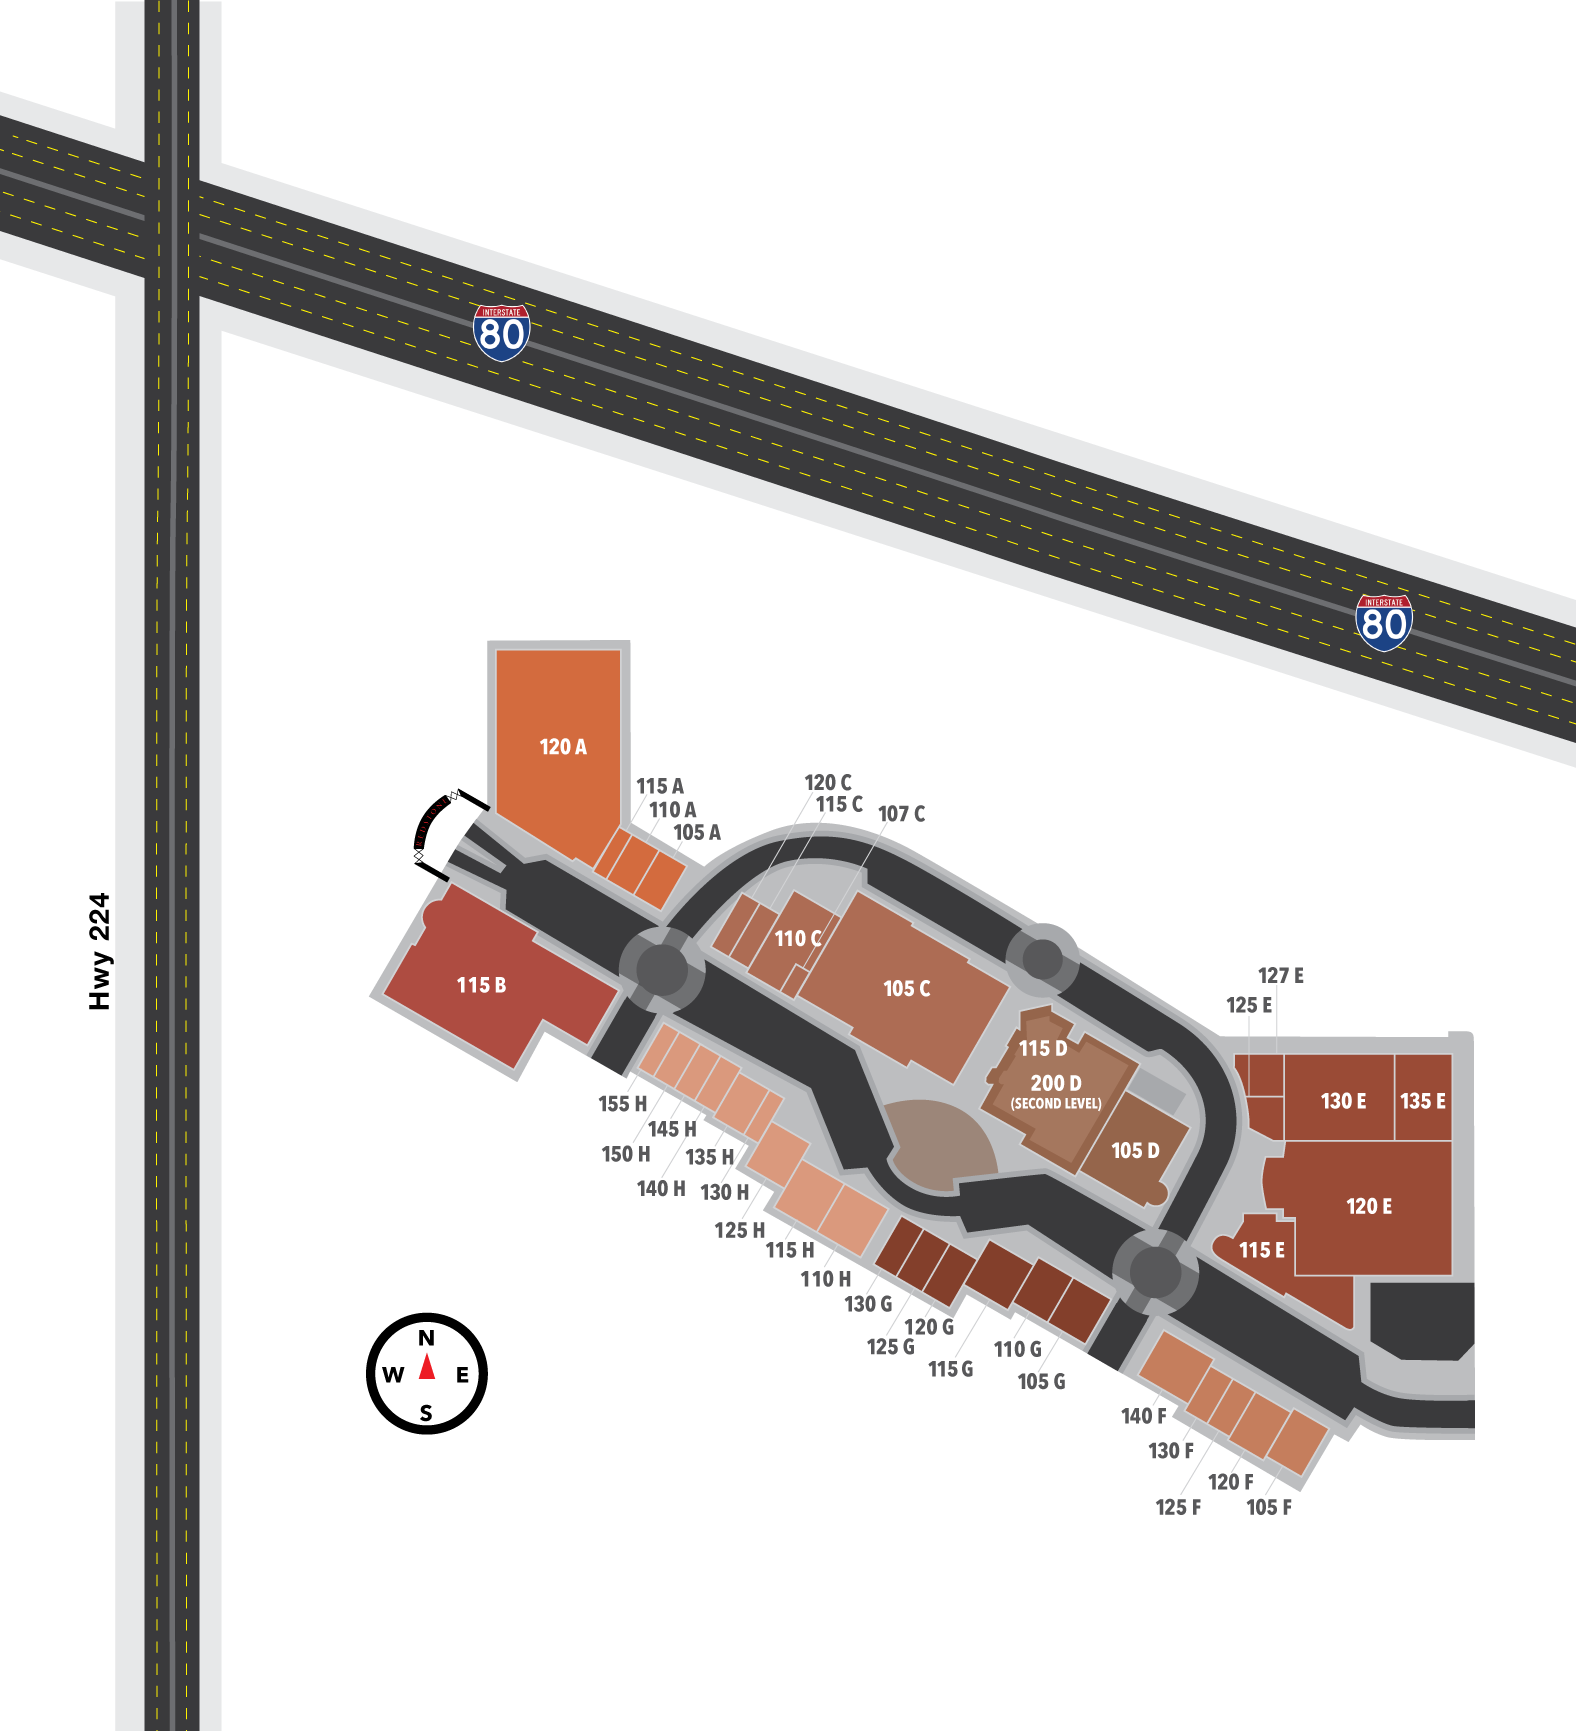 Map of the Redstone Shopping Center, showing locations for dining, shopping, and wellness located in Park City, Utah.